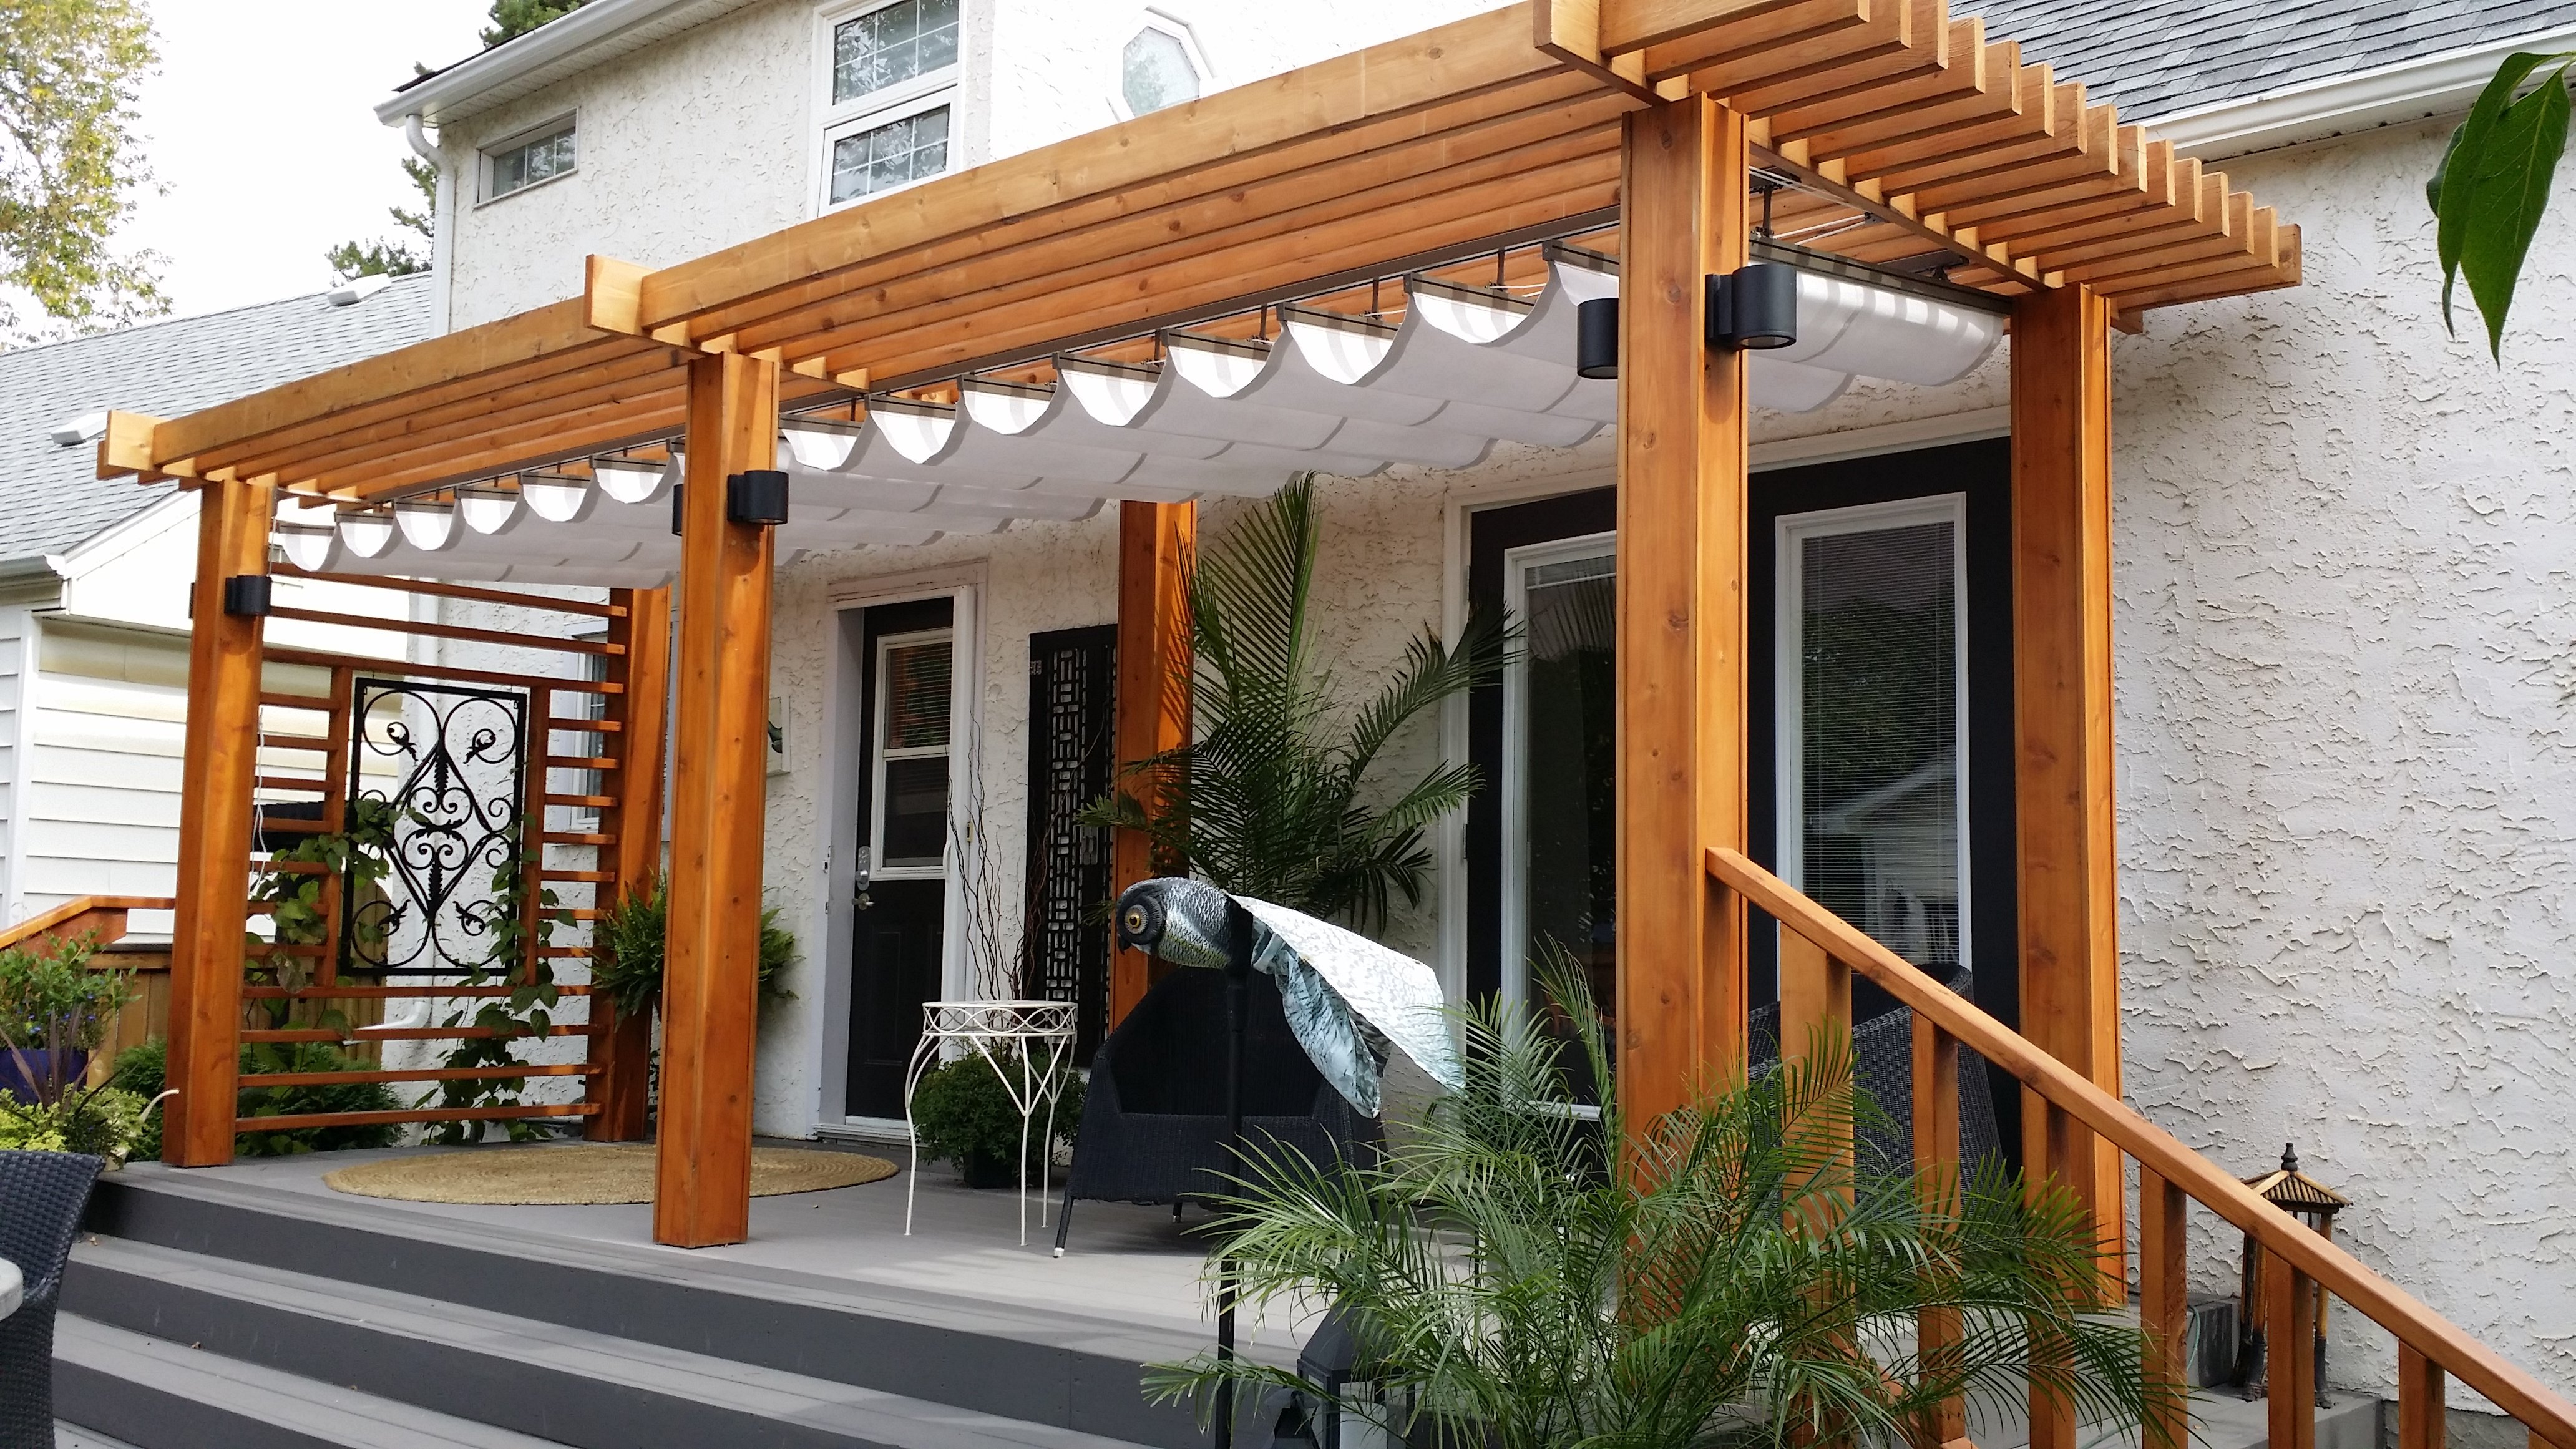 Retractable canopy for pergola - How Do You Top Off A Beautiful Cedar Pergola Why With A Betterliving Retract